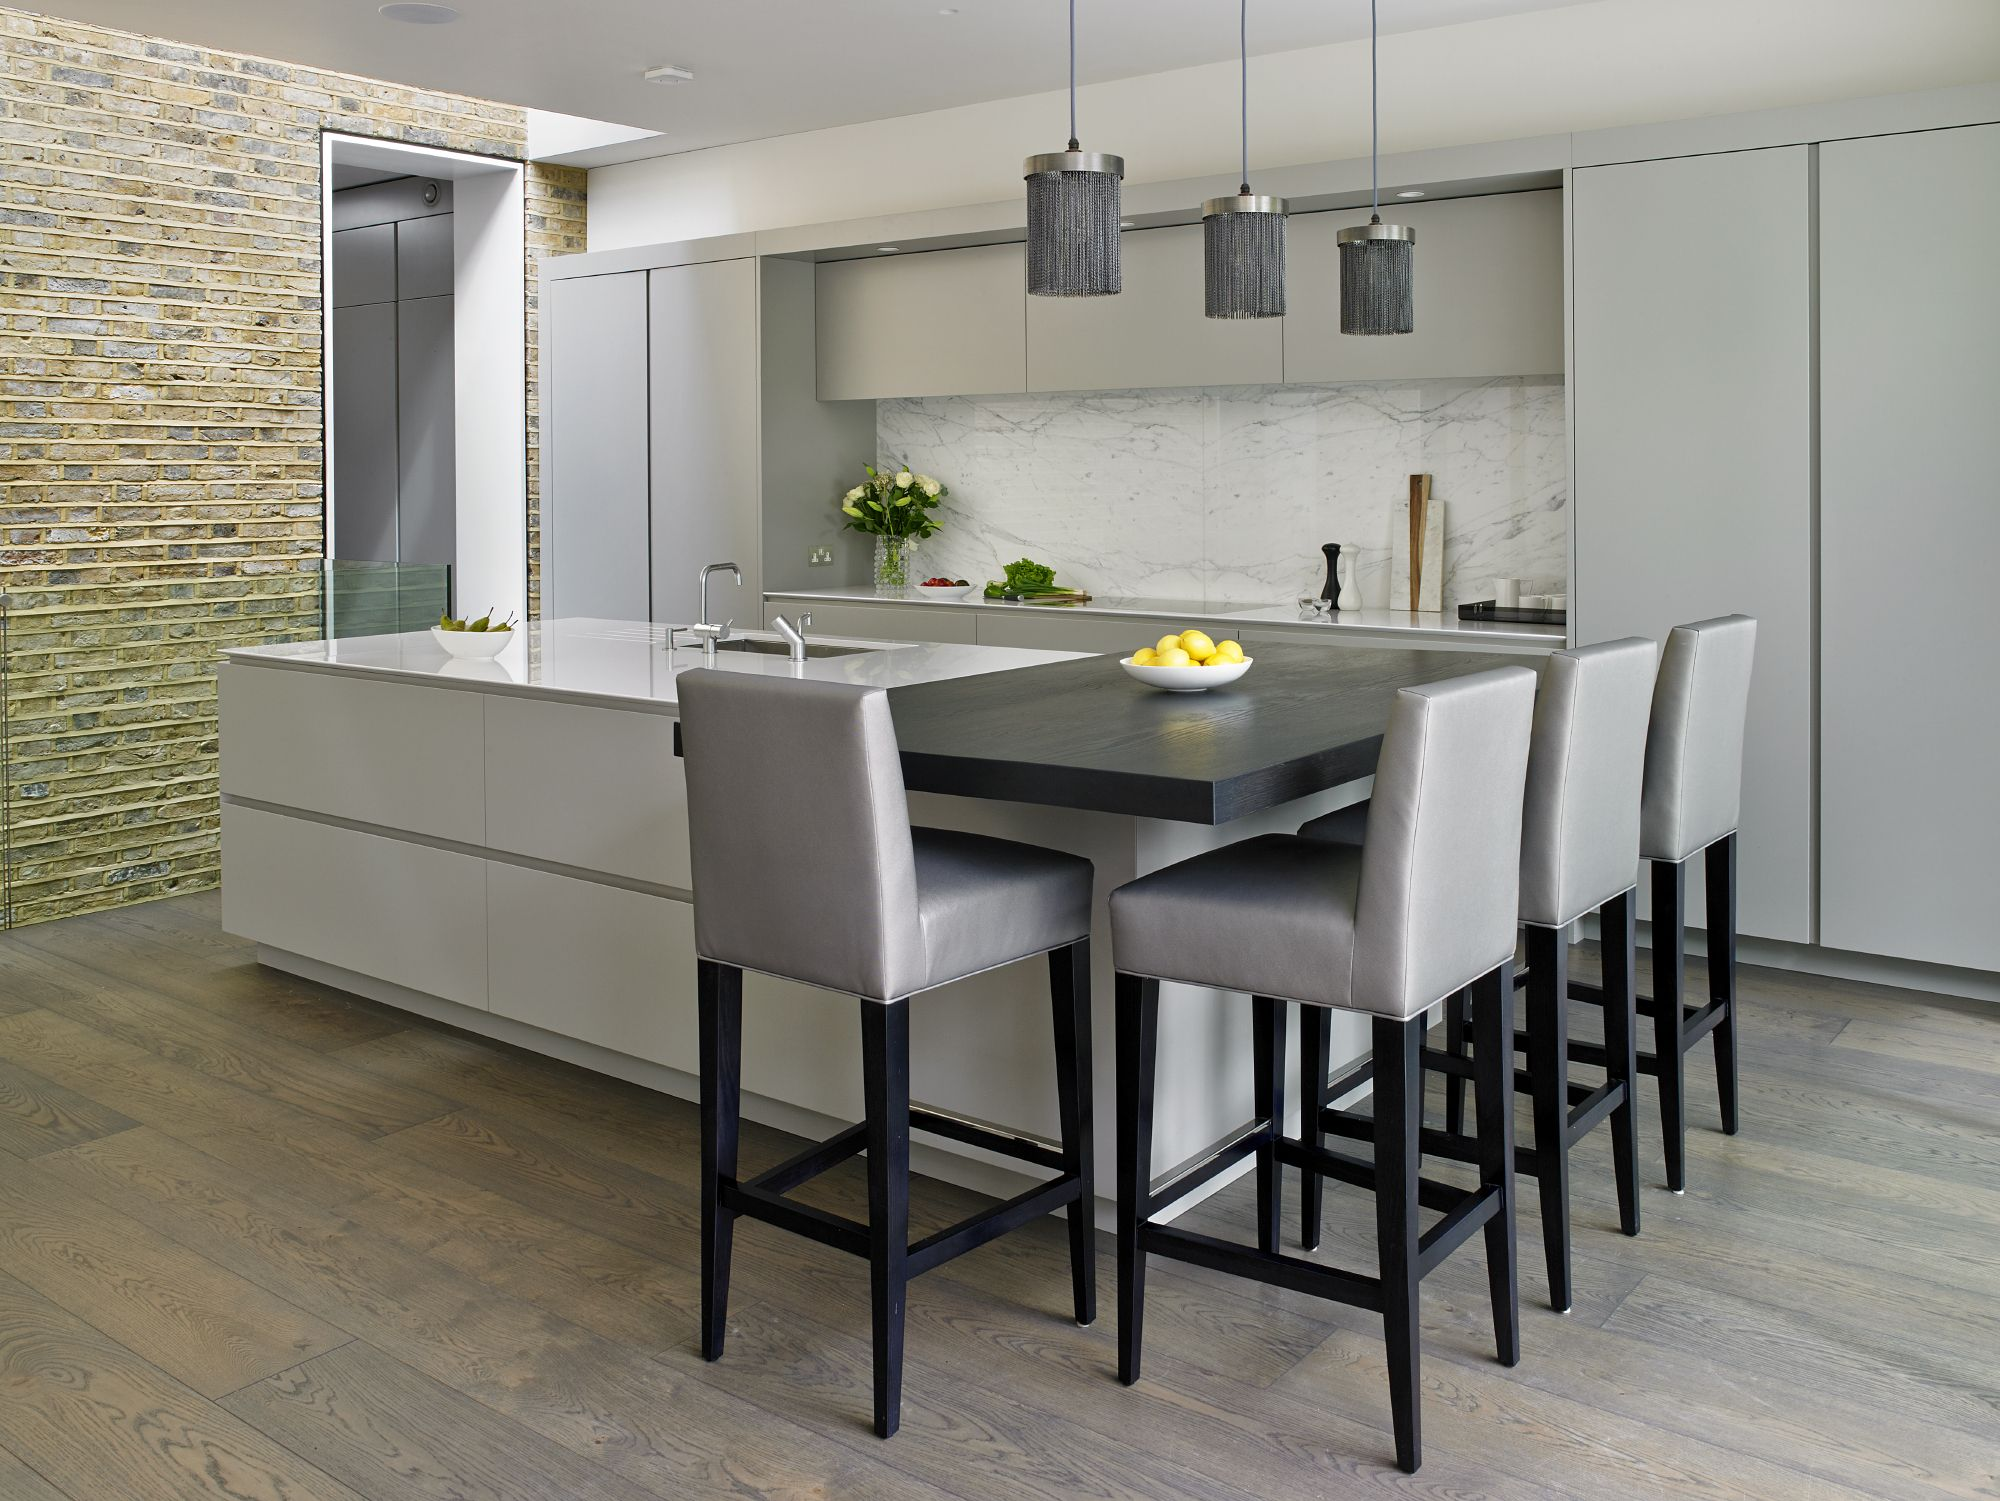 Grey Handleless Kitchen Design By Brayer. Victorian House Renovation With  Secret Cloakroom, Large Island